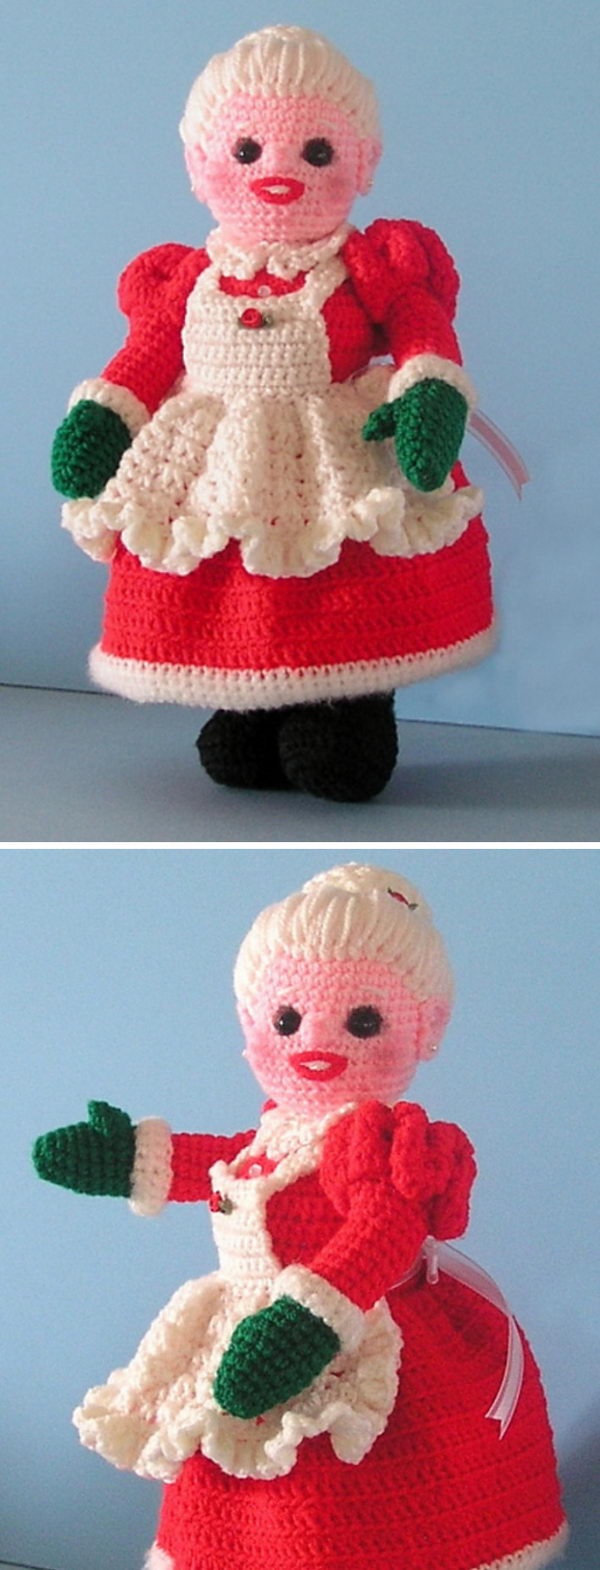 Mrs Santa Claus Doll.